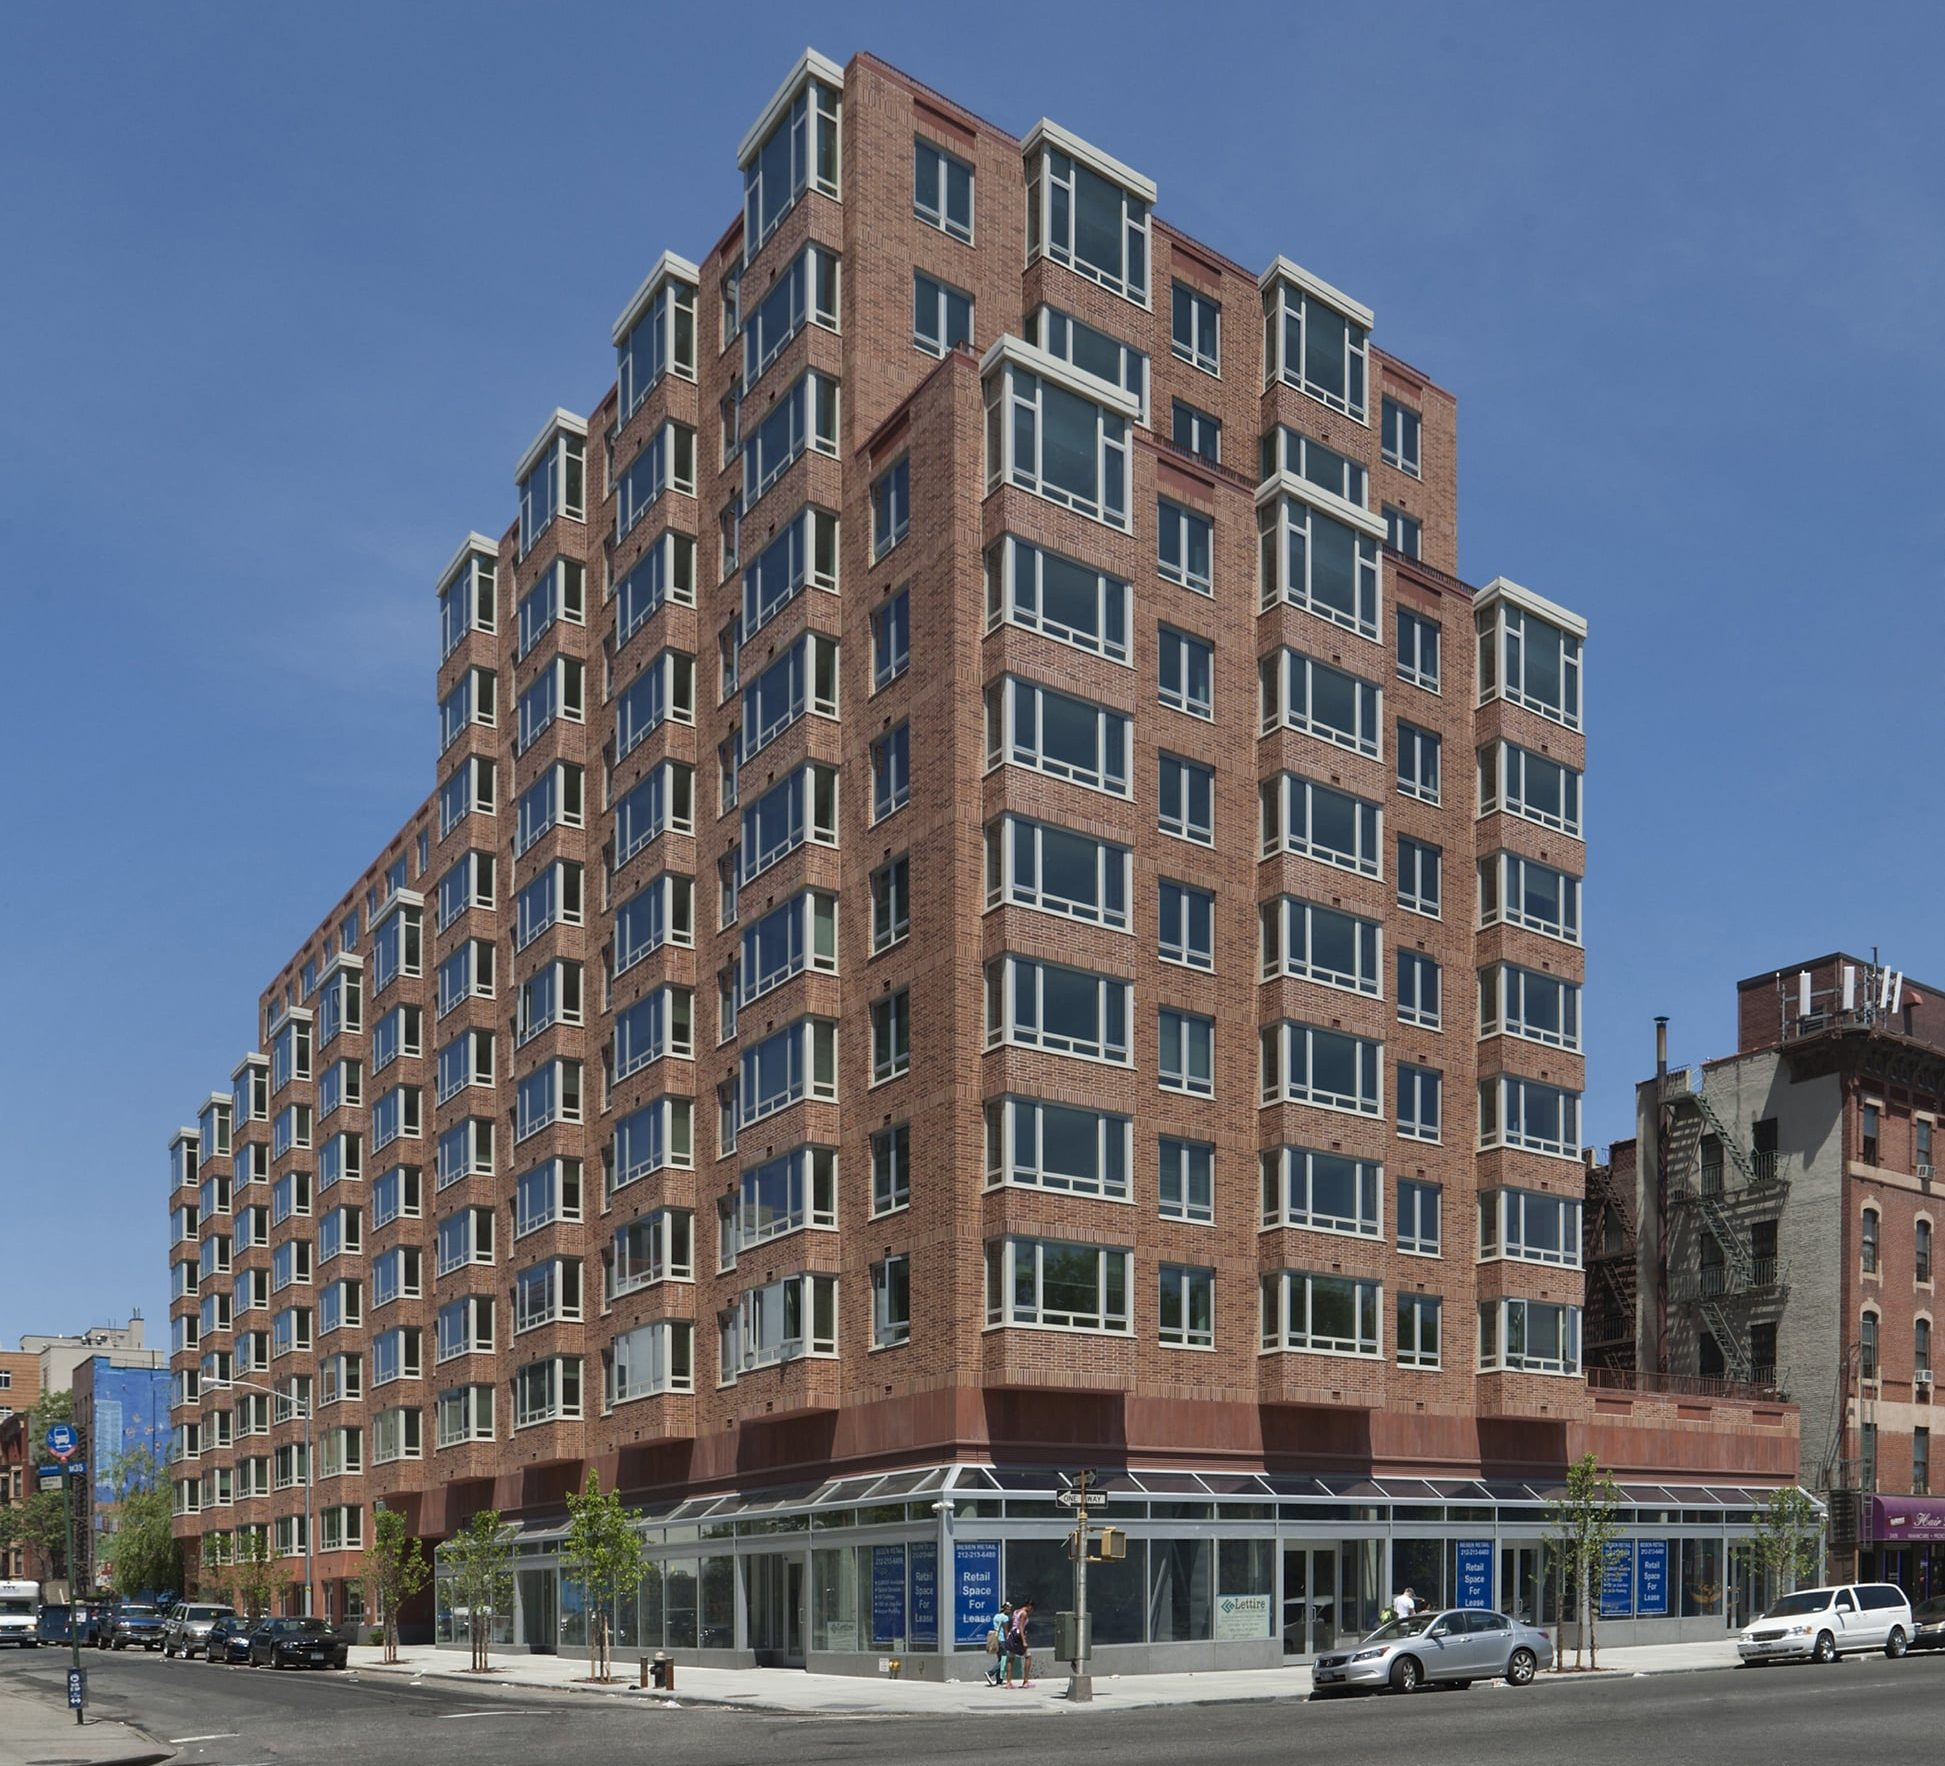 Apply For A Middle-income Apartment In East Harlem From